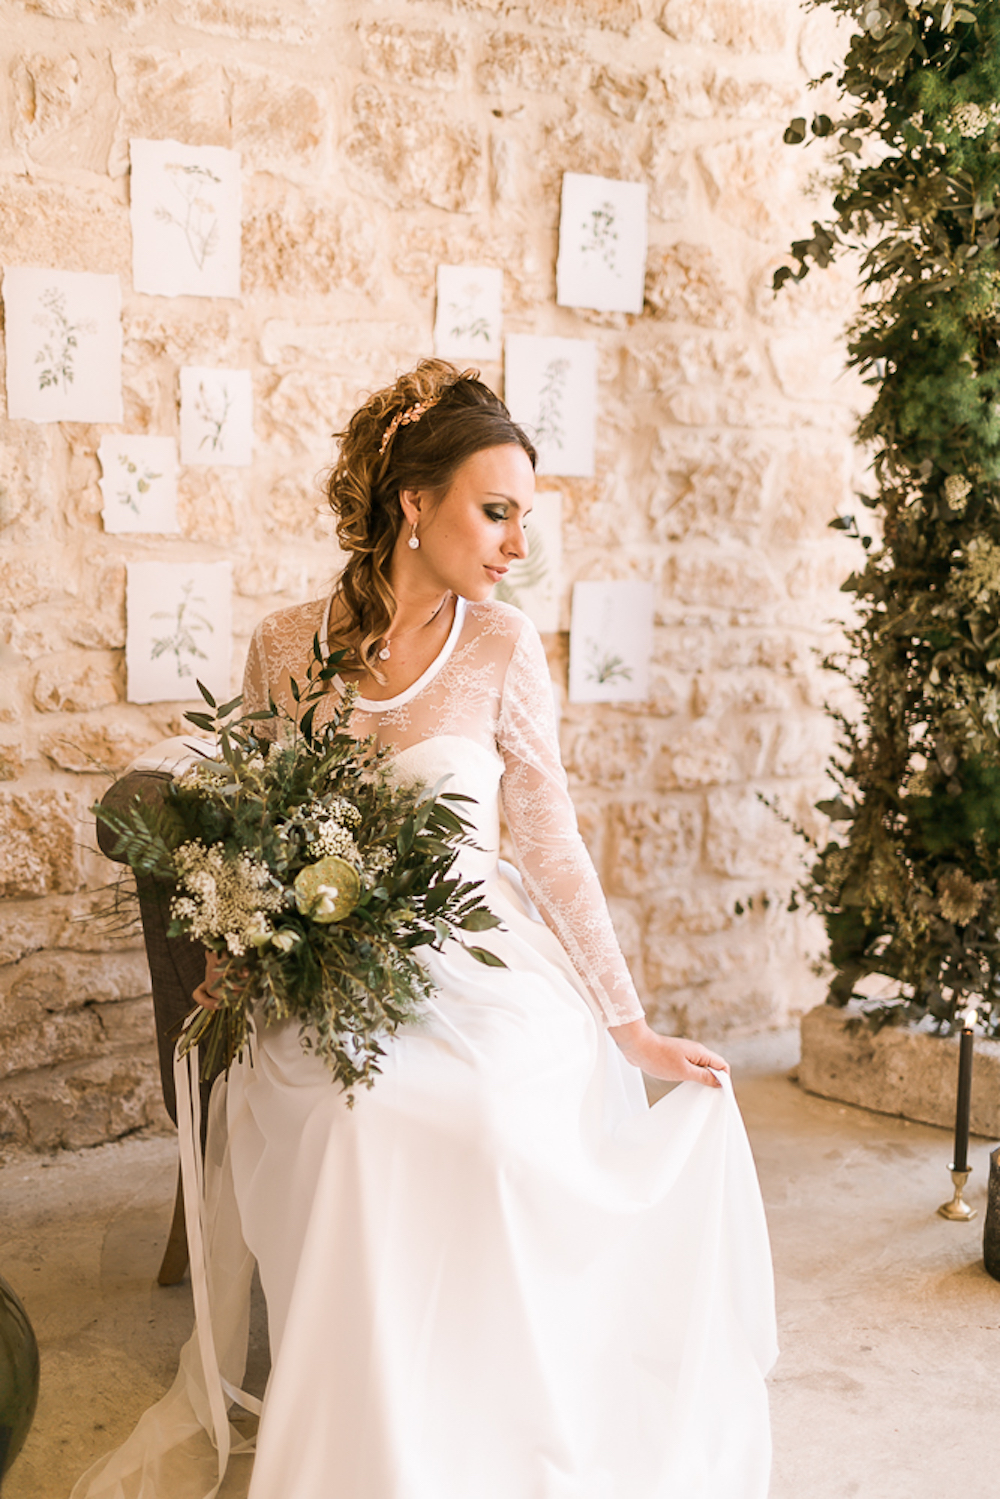 parisian-inspired-blog-mariage-shooting-inspiration-vegetal-abbaye-trois-fontaines-marne-cg-photographie-7.jpg